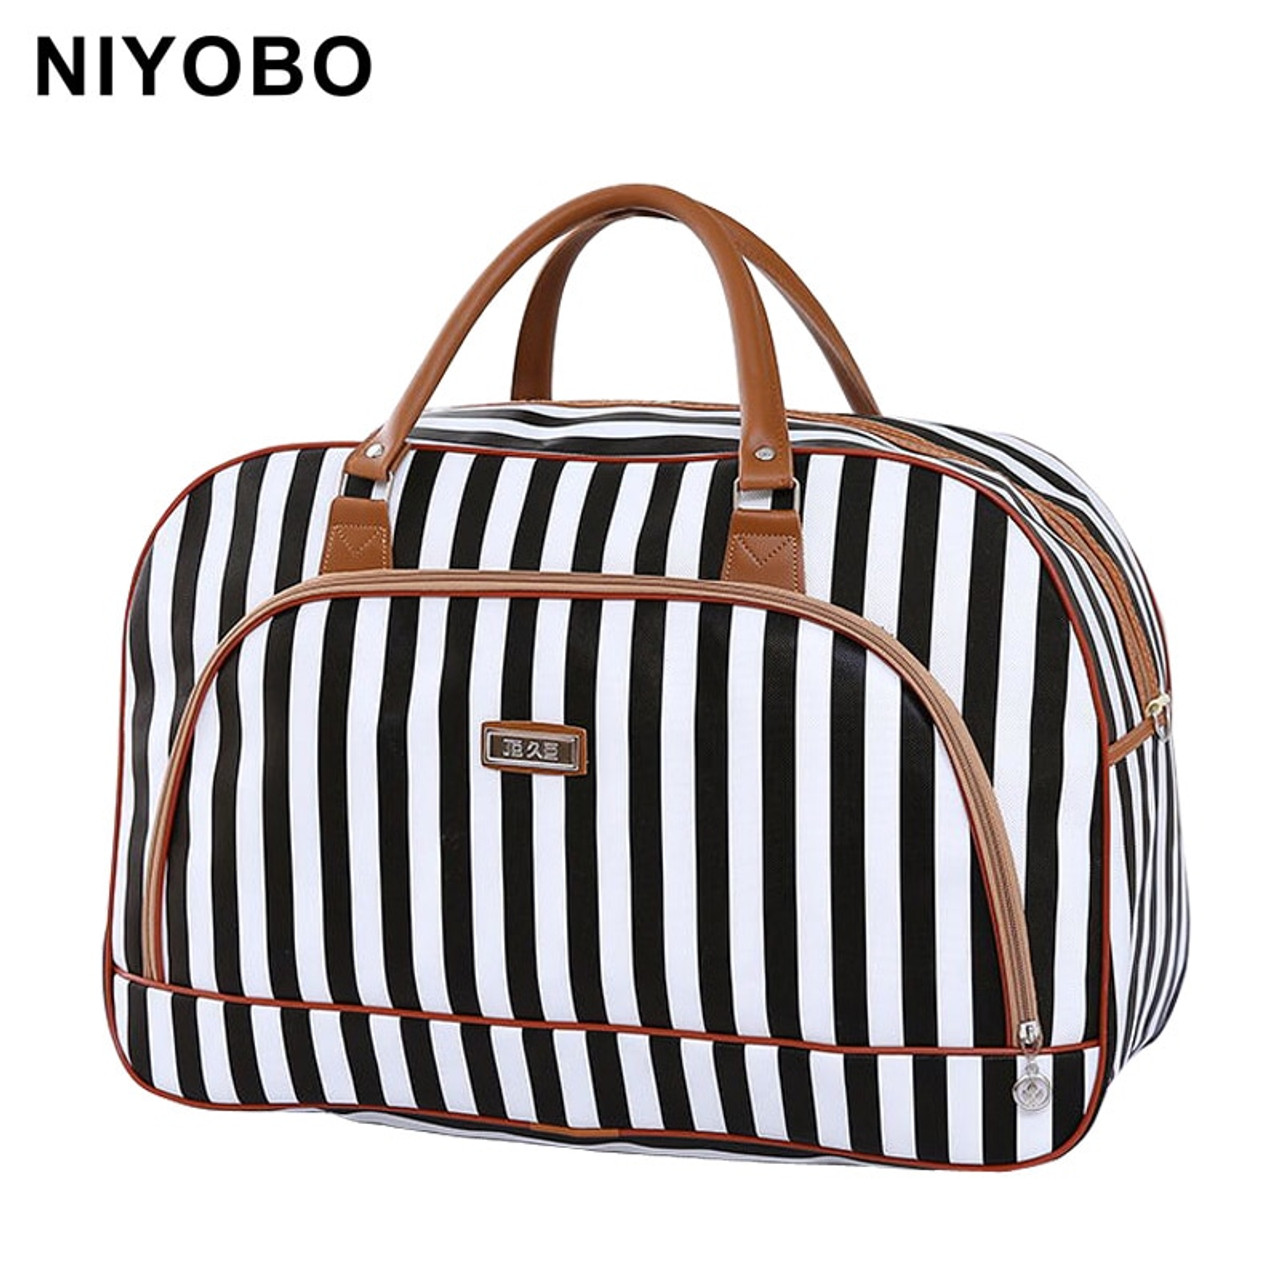 991753d70067 Women Travel Bags 2018 Fashion Pu Leather Large Capacity Waterproof Print  Luggage Duffle Bag Casual Travel ...